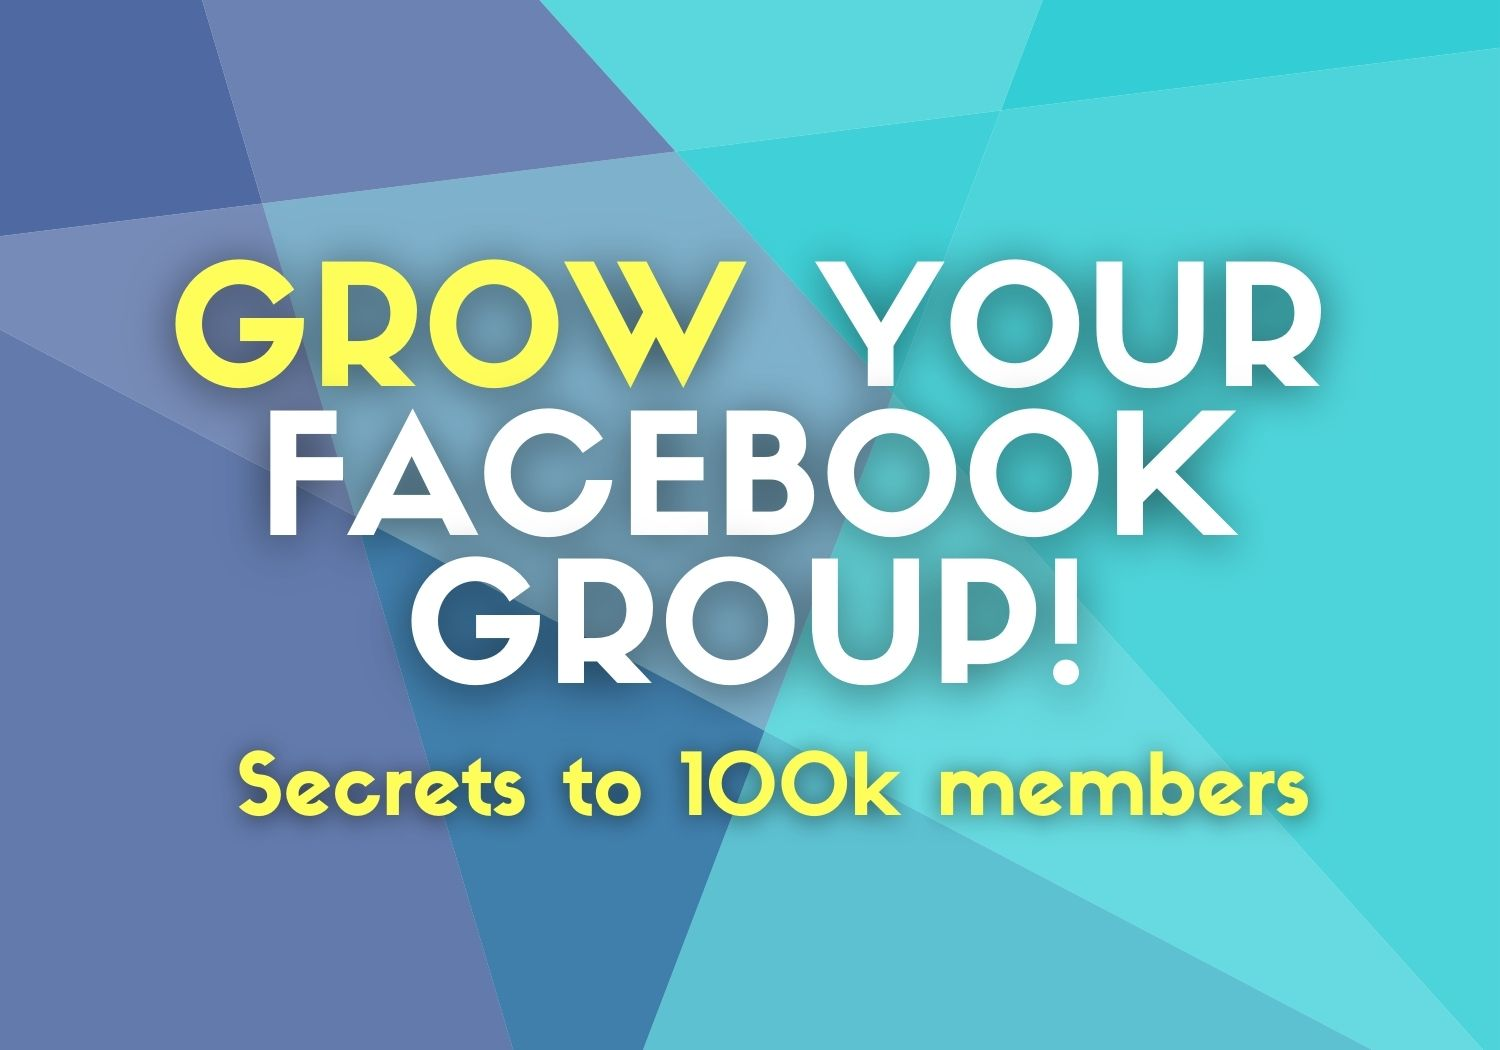 Grow your facebook group to 100,000 members